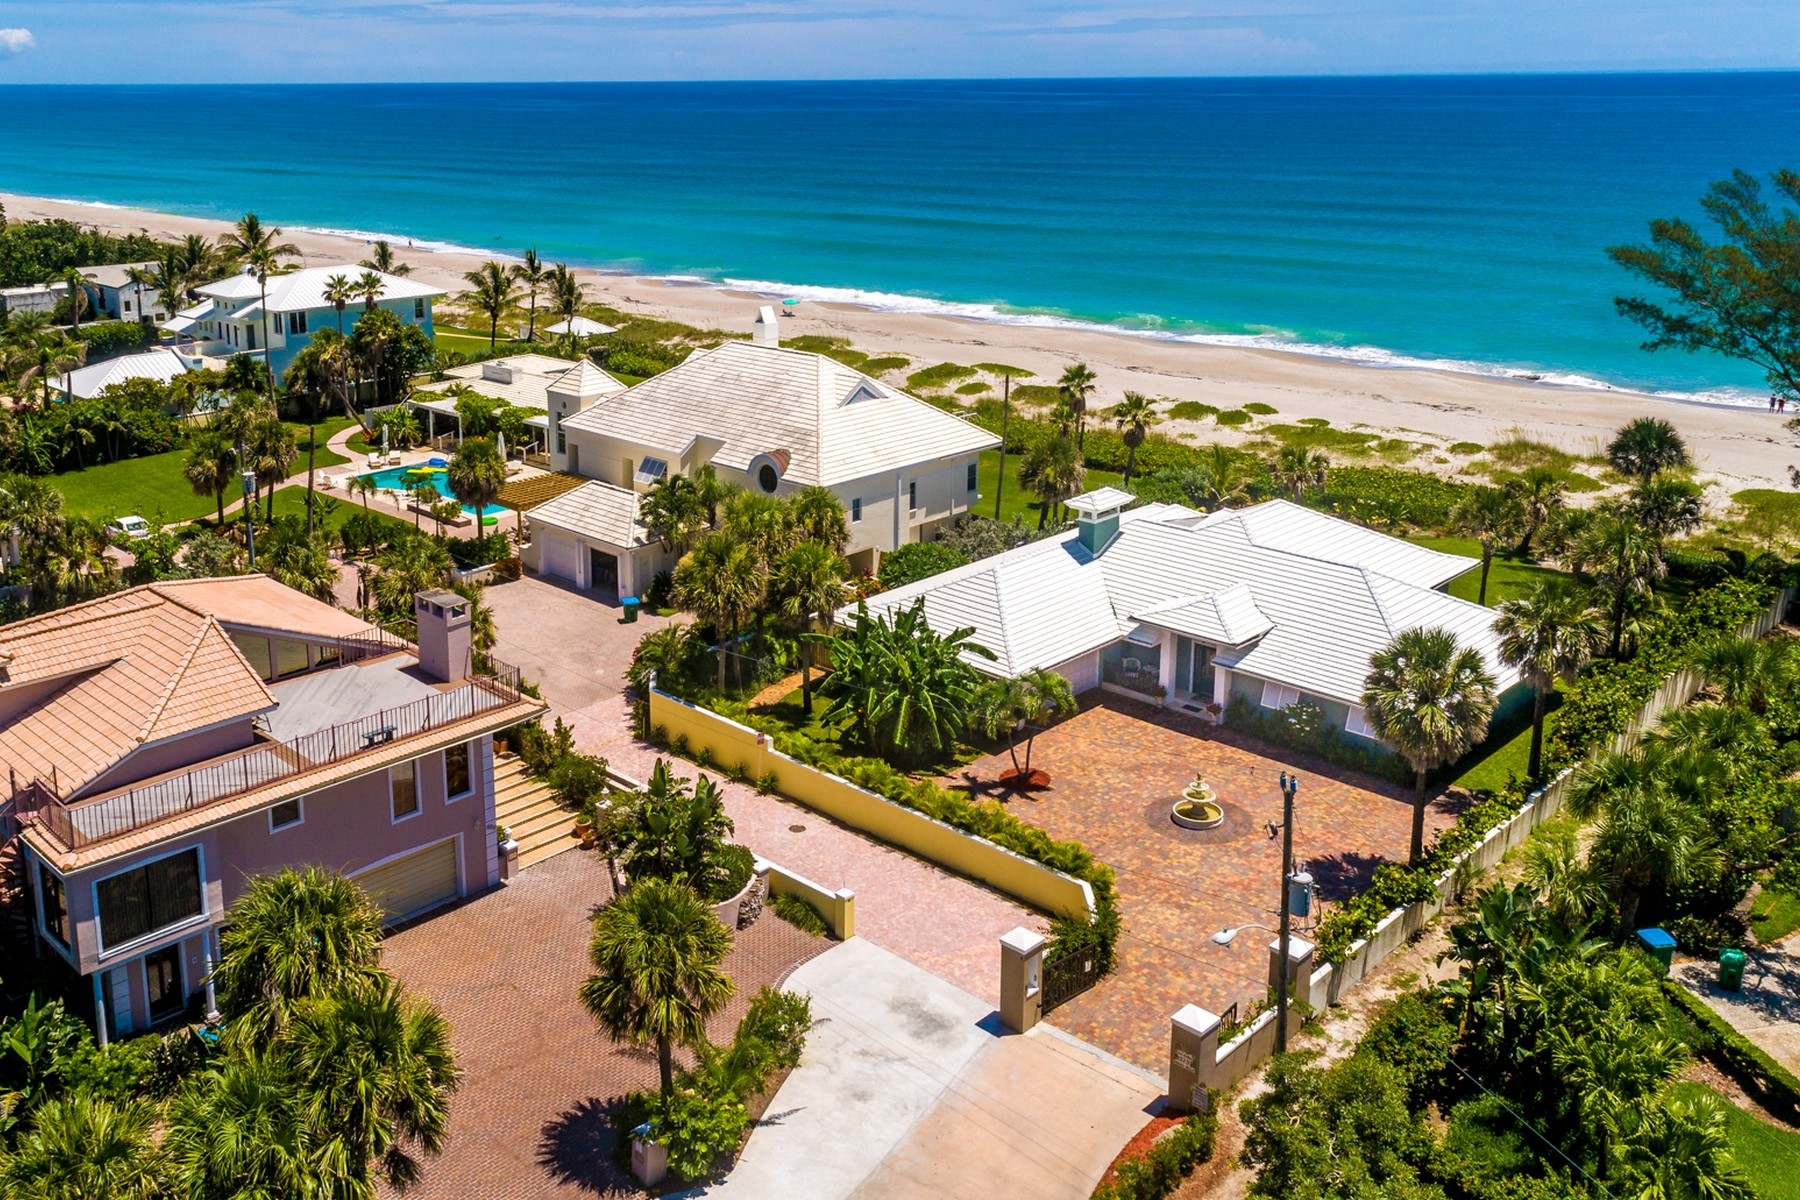 Additional photo for property listing at Impressive Oceanfront Home 325 Atlantic Street Melbourne Beach, Florida 32951 United States